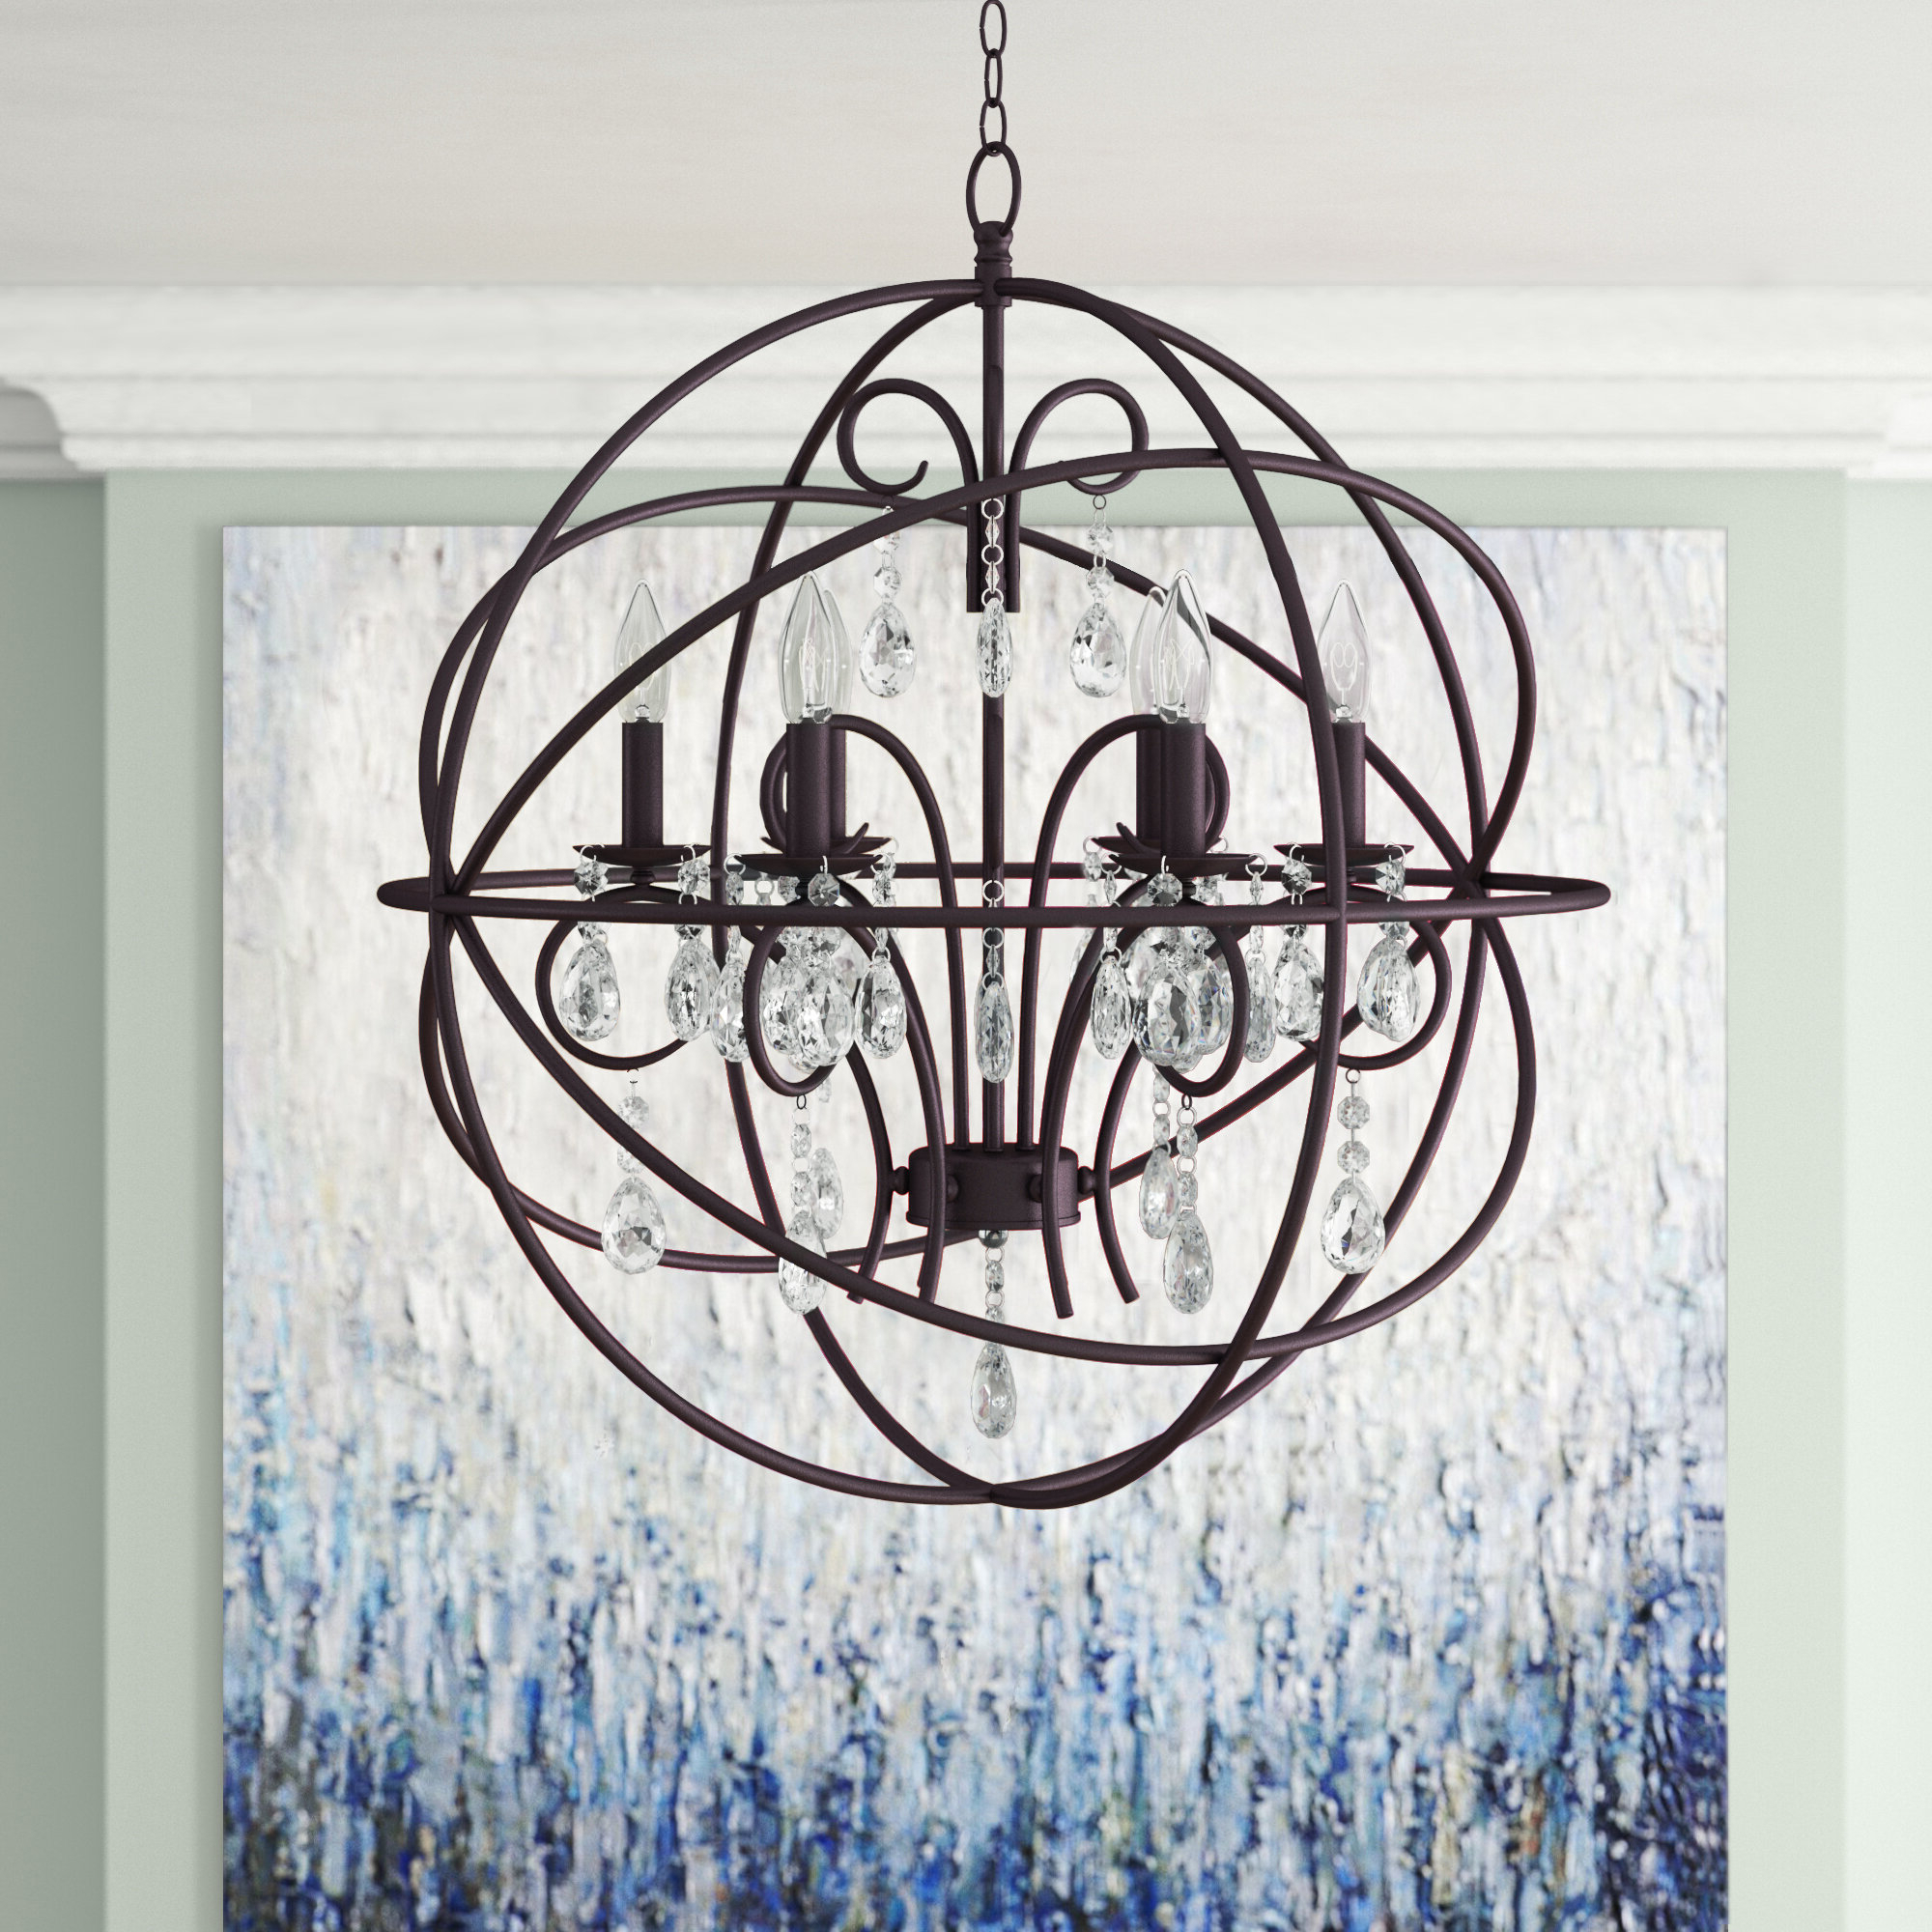 Alden 6 Light Globe Chandeliers Within Most Up To Date Alden 6 Light Globe Chandelier (Gallery 1 of 20)